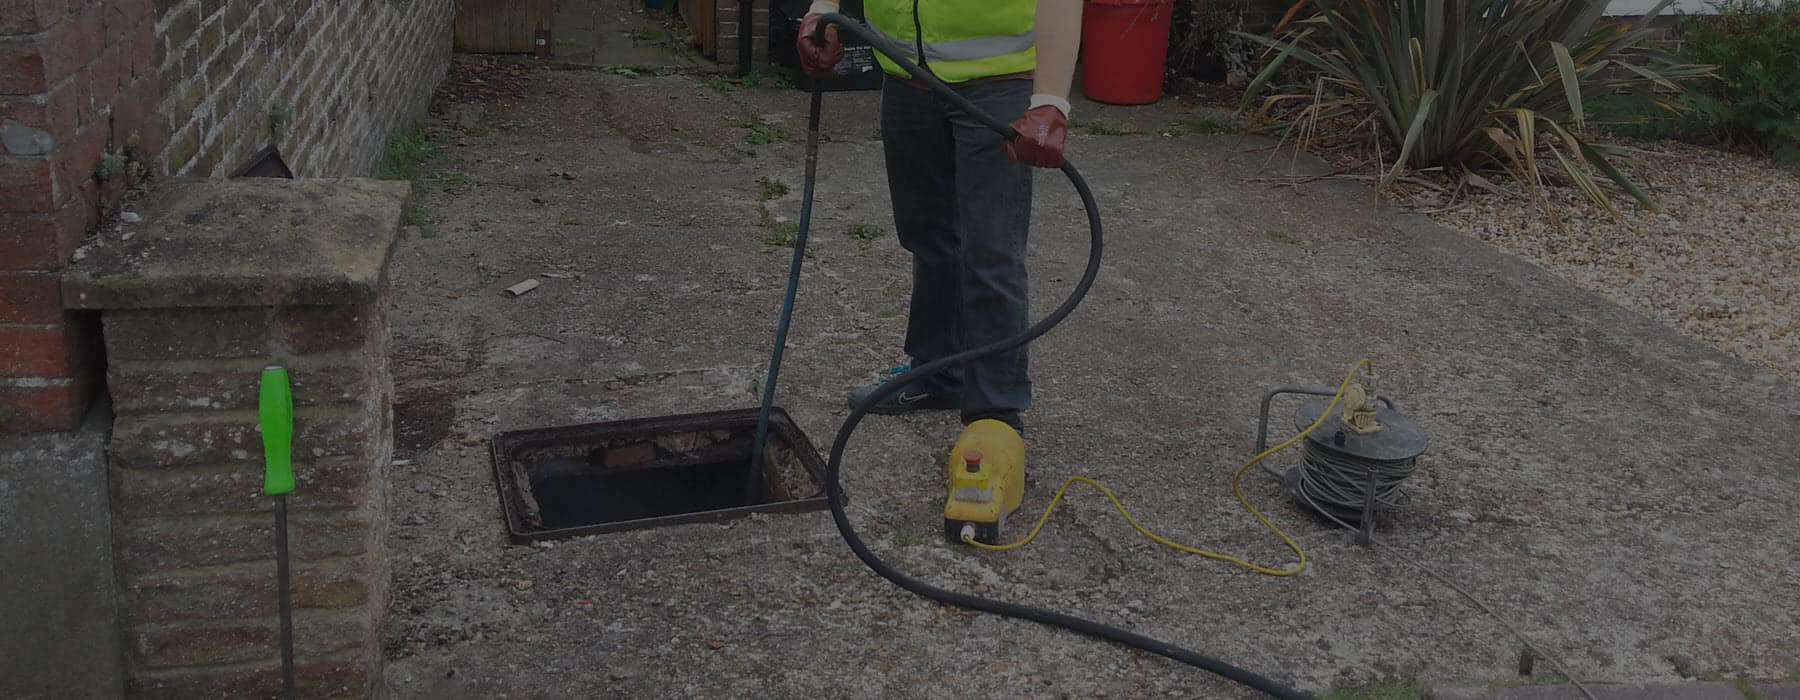 Drains-Unblocked-Weoley-Castle-Drainage-Company-in-Weoley-Castle